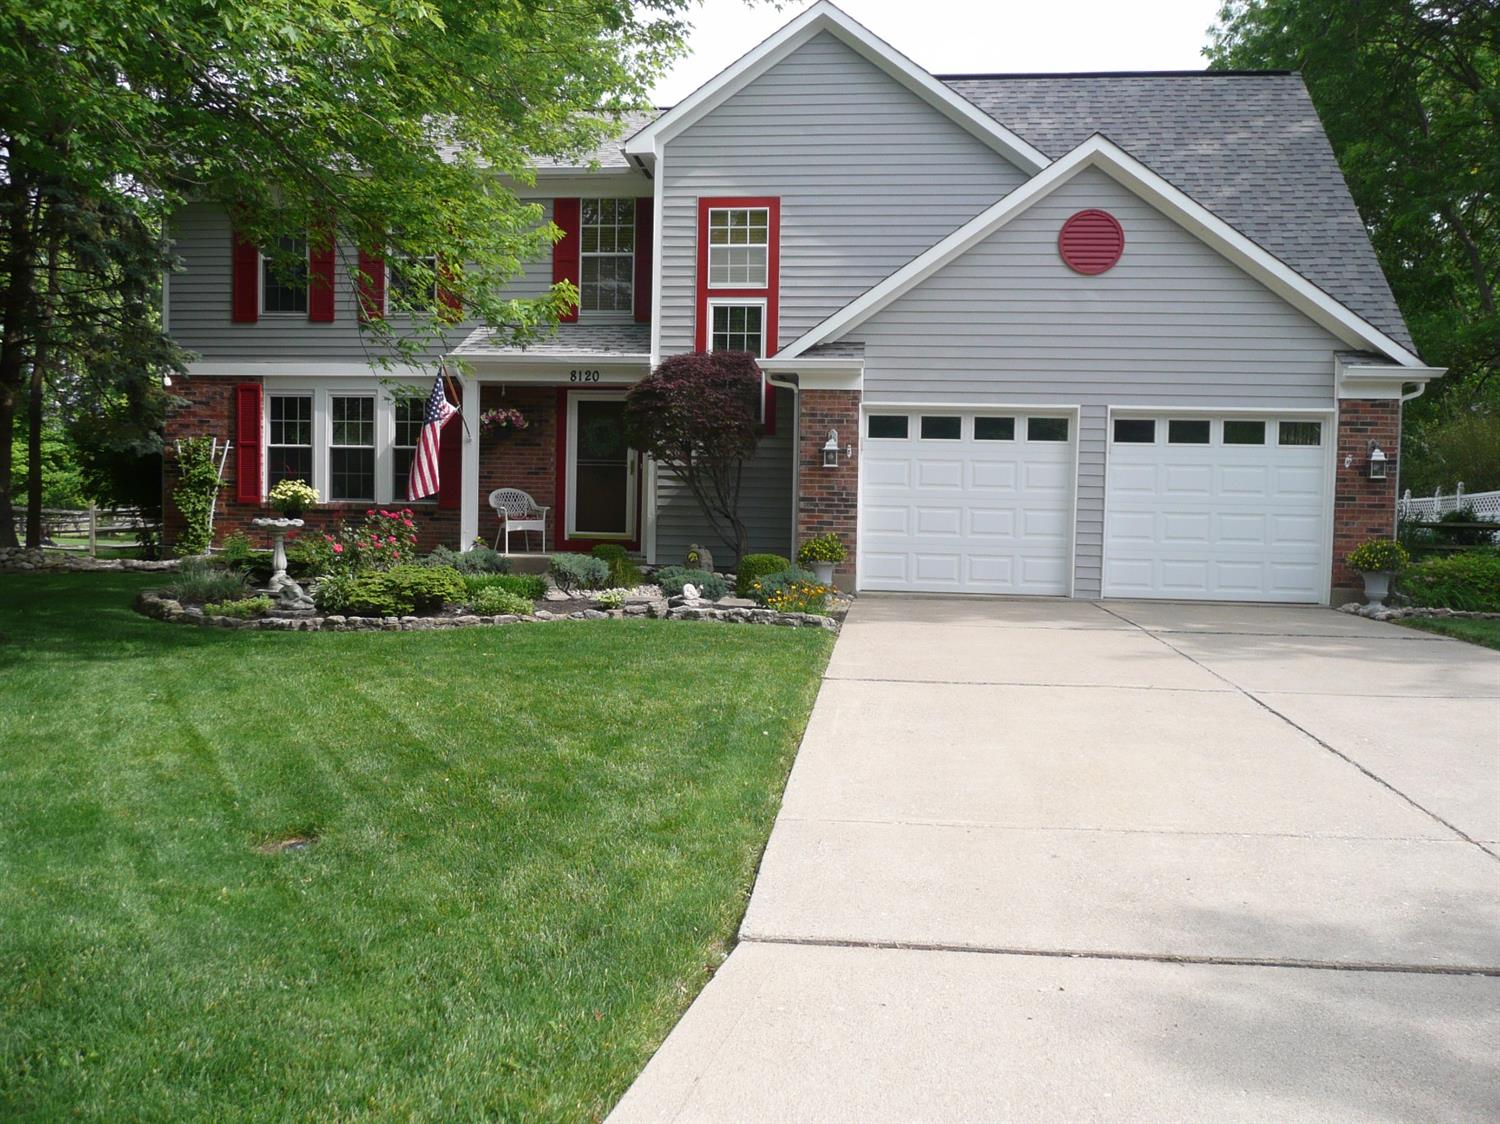 8120 Clearmeadow Drive, West Chester, OH 45069